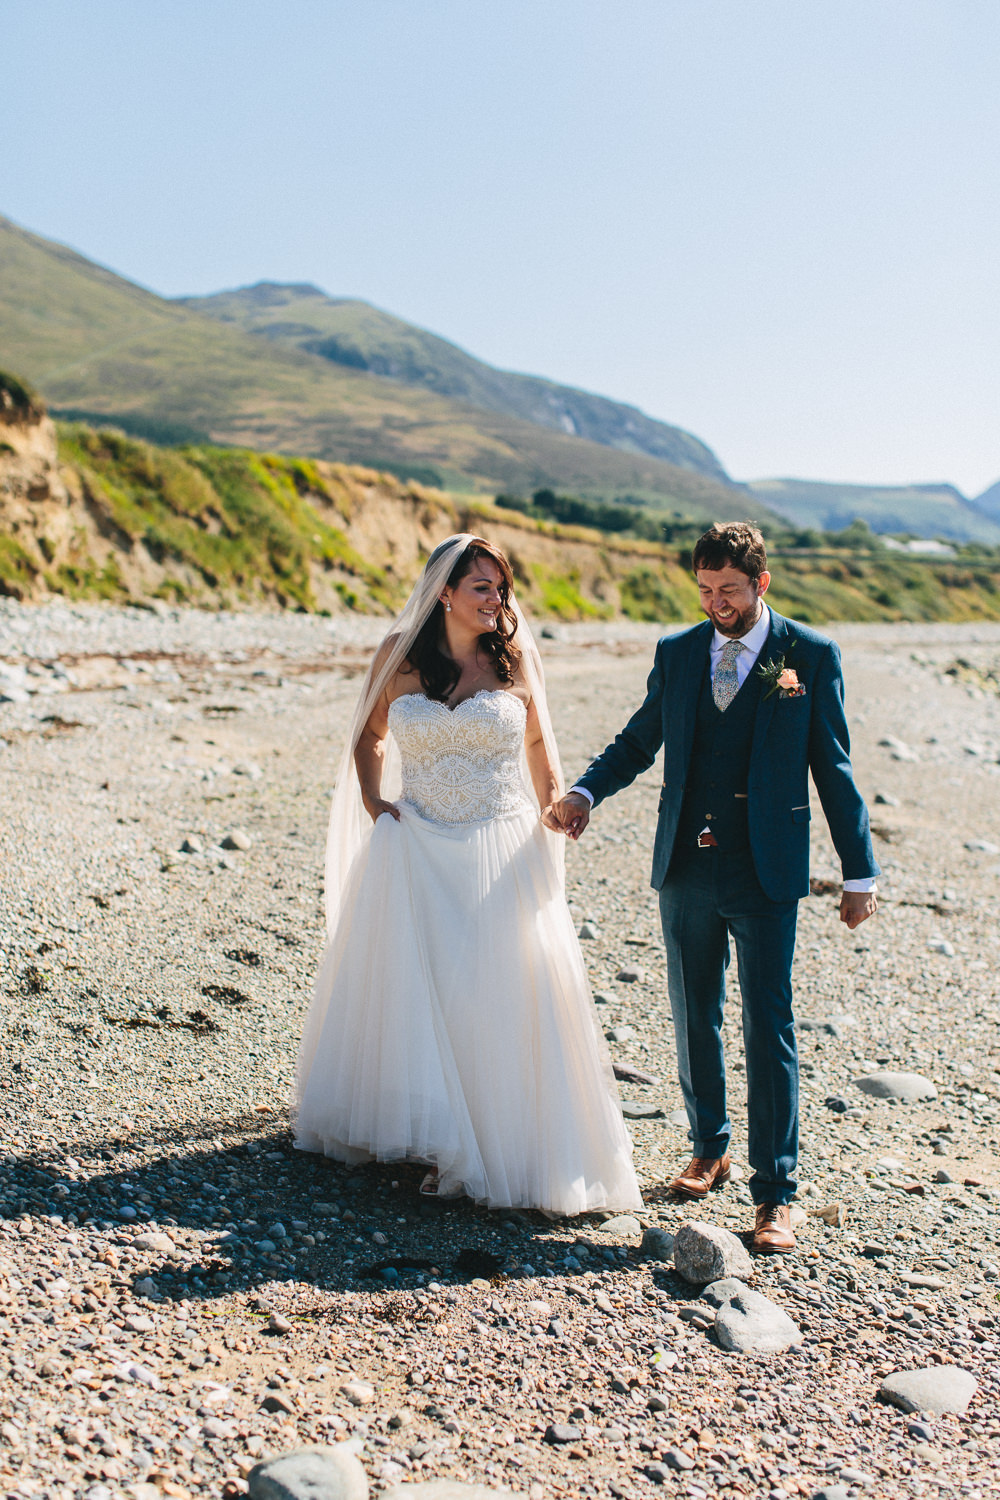 Bride Bridal Separates Sweetheart Neckline Strapless Tulle Floor Length Veil Three Piece Waistcoat Groom Bach Wen Farm Wedding Jessica O'Shaughnessy Photography